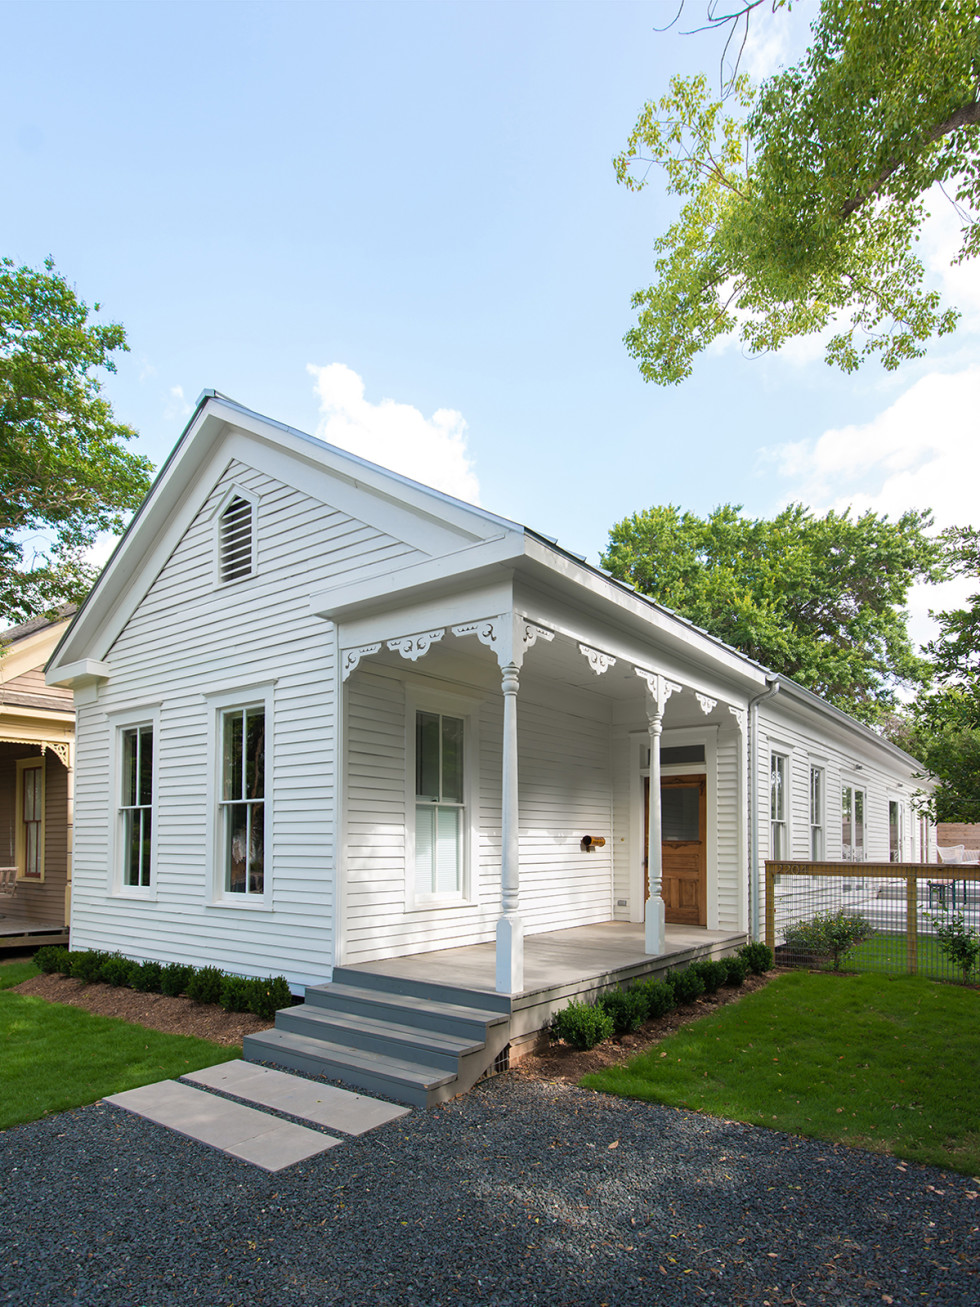 Good Brick Awards 2015 Carl Hollimon Victorian cottage in Old Sixth Ward Historic District